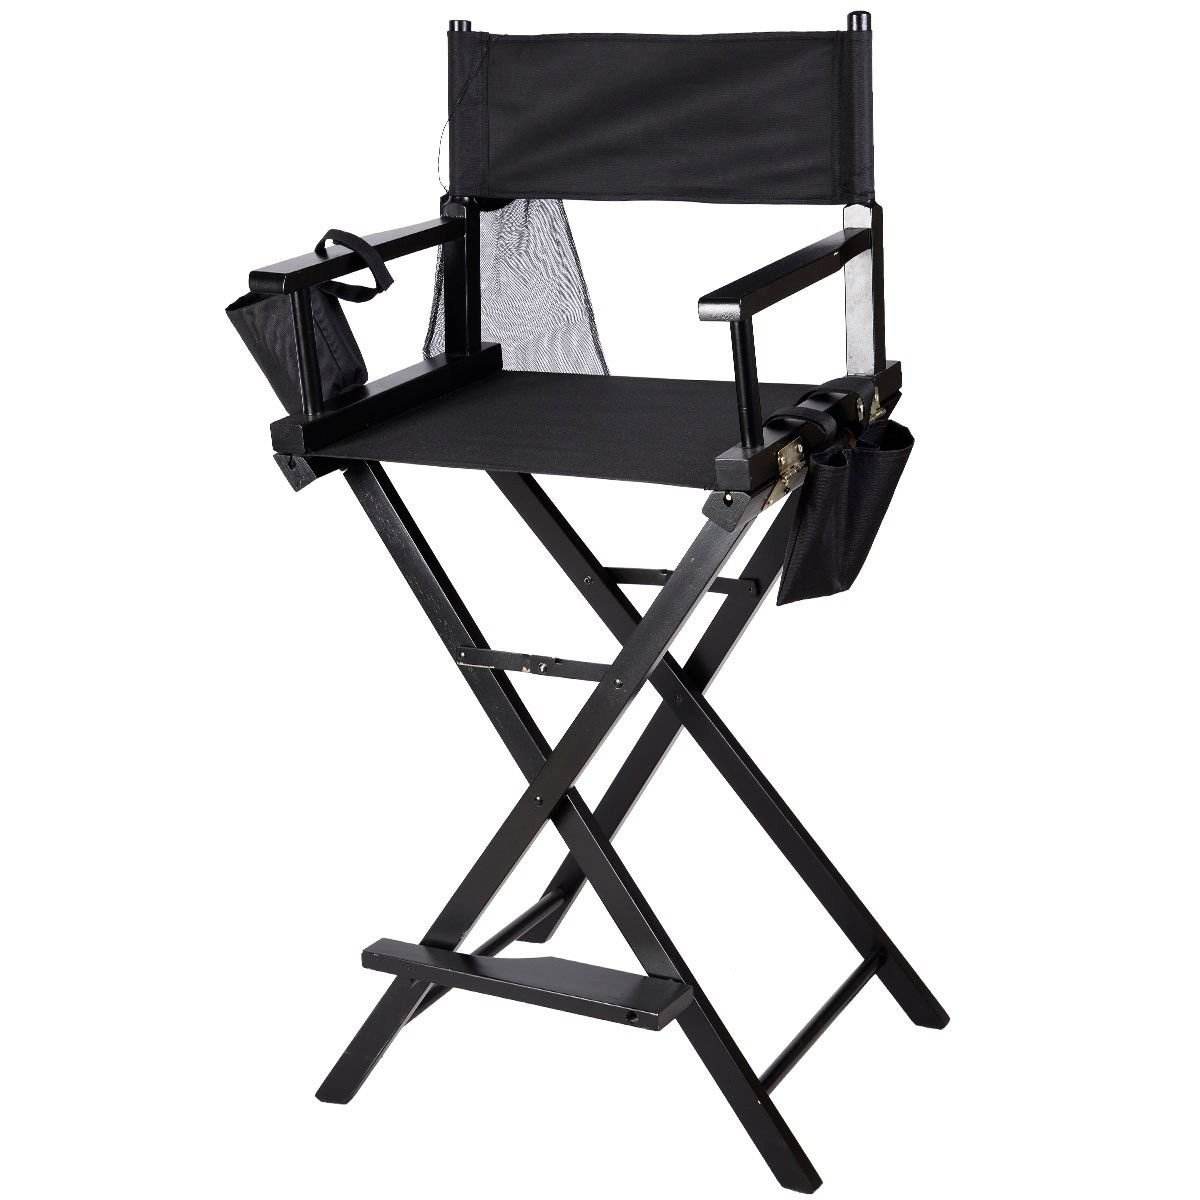 Professional Makeup Artist Directors Wood Foldable Chair Light Weight Black